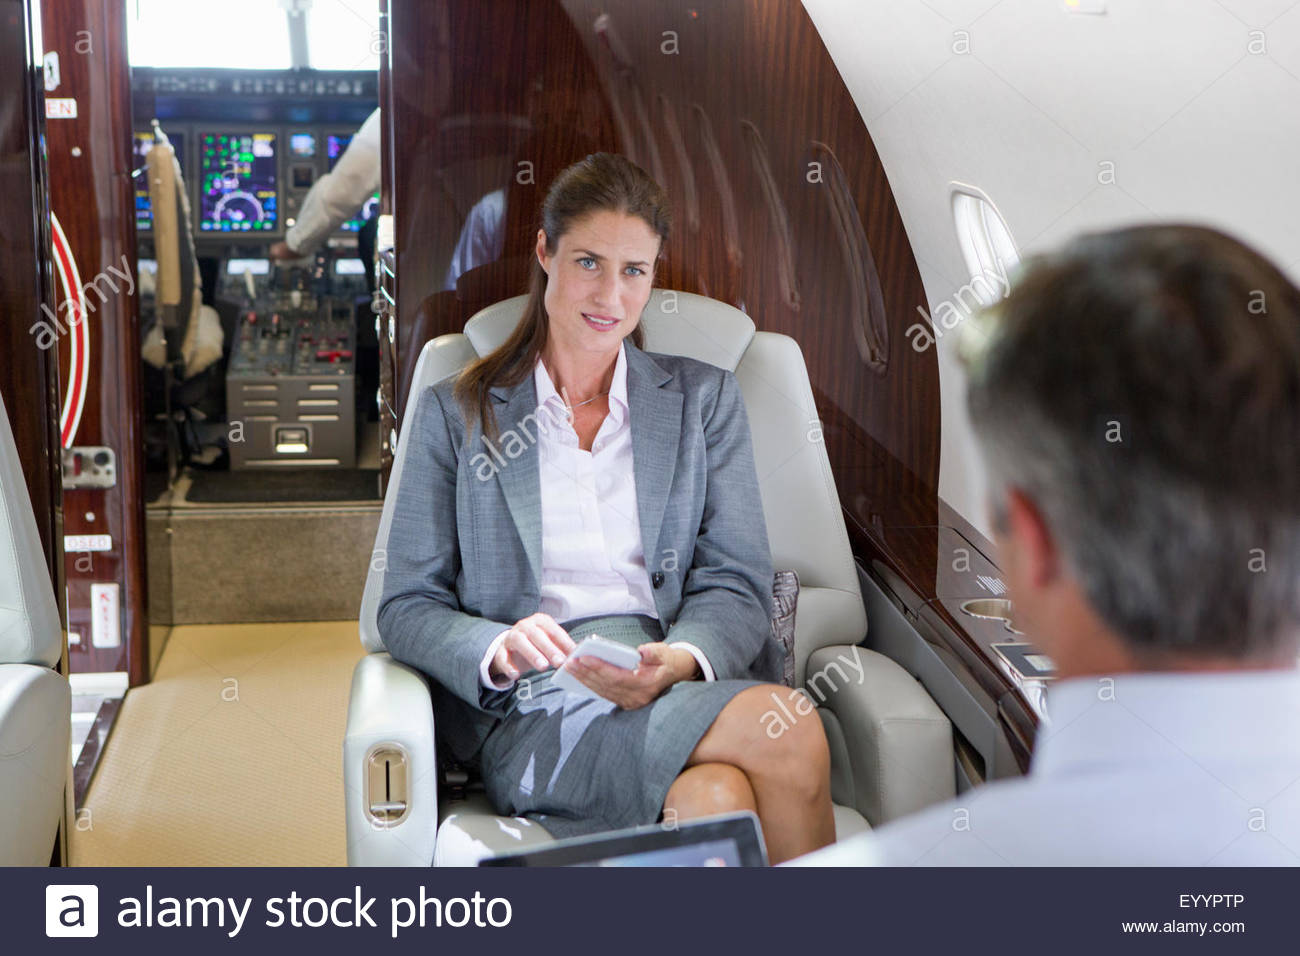 Businesswoman with phone and Businessman with digital tablet having meeting on private jet - Stock Image